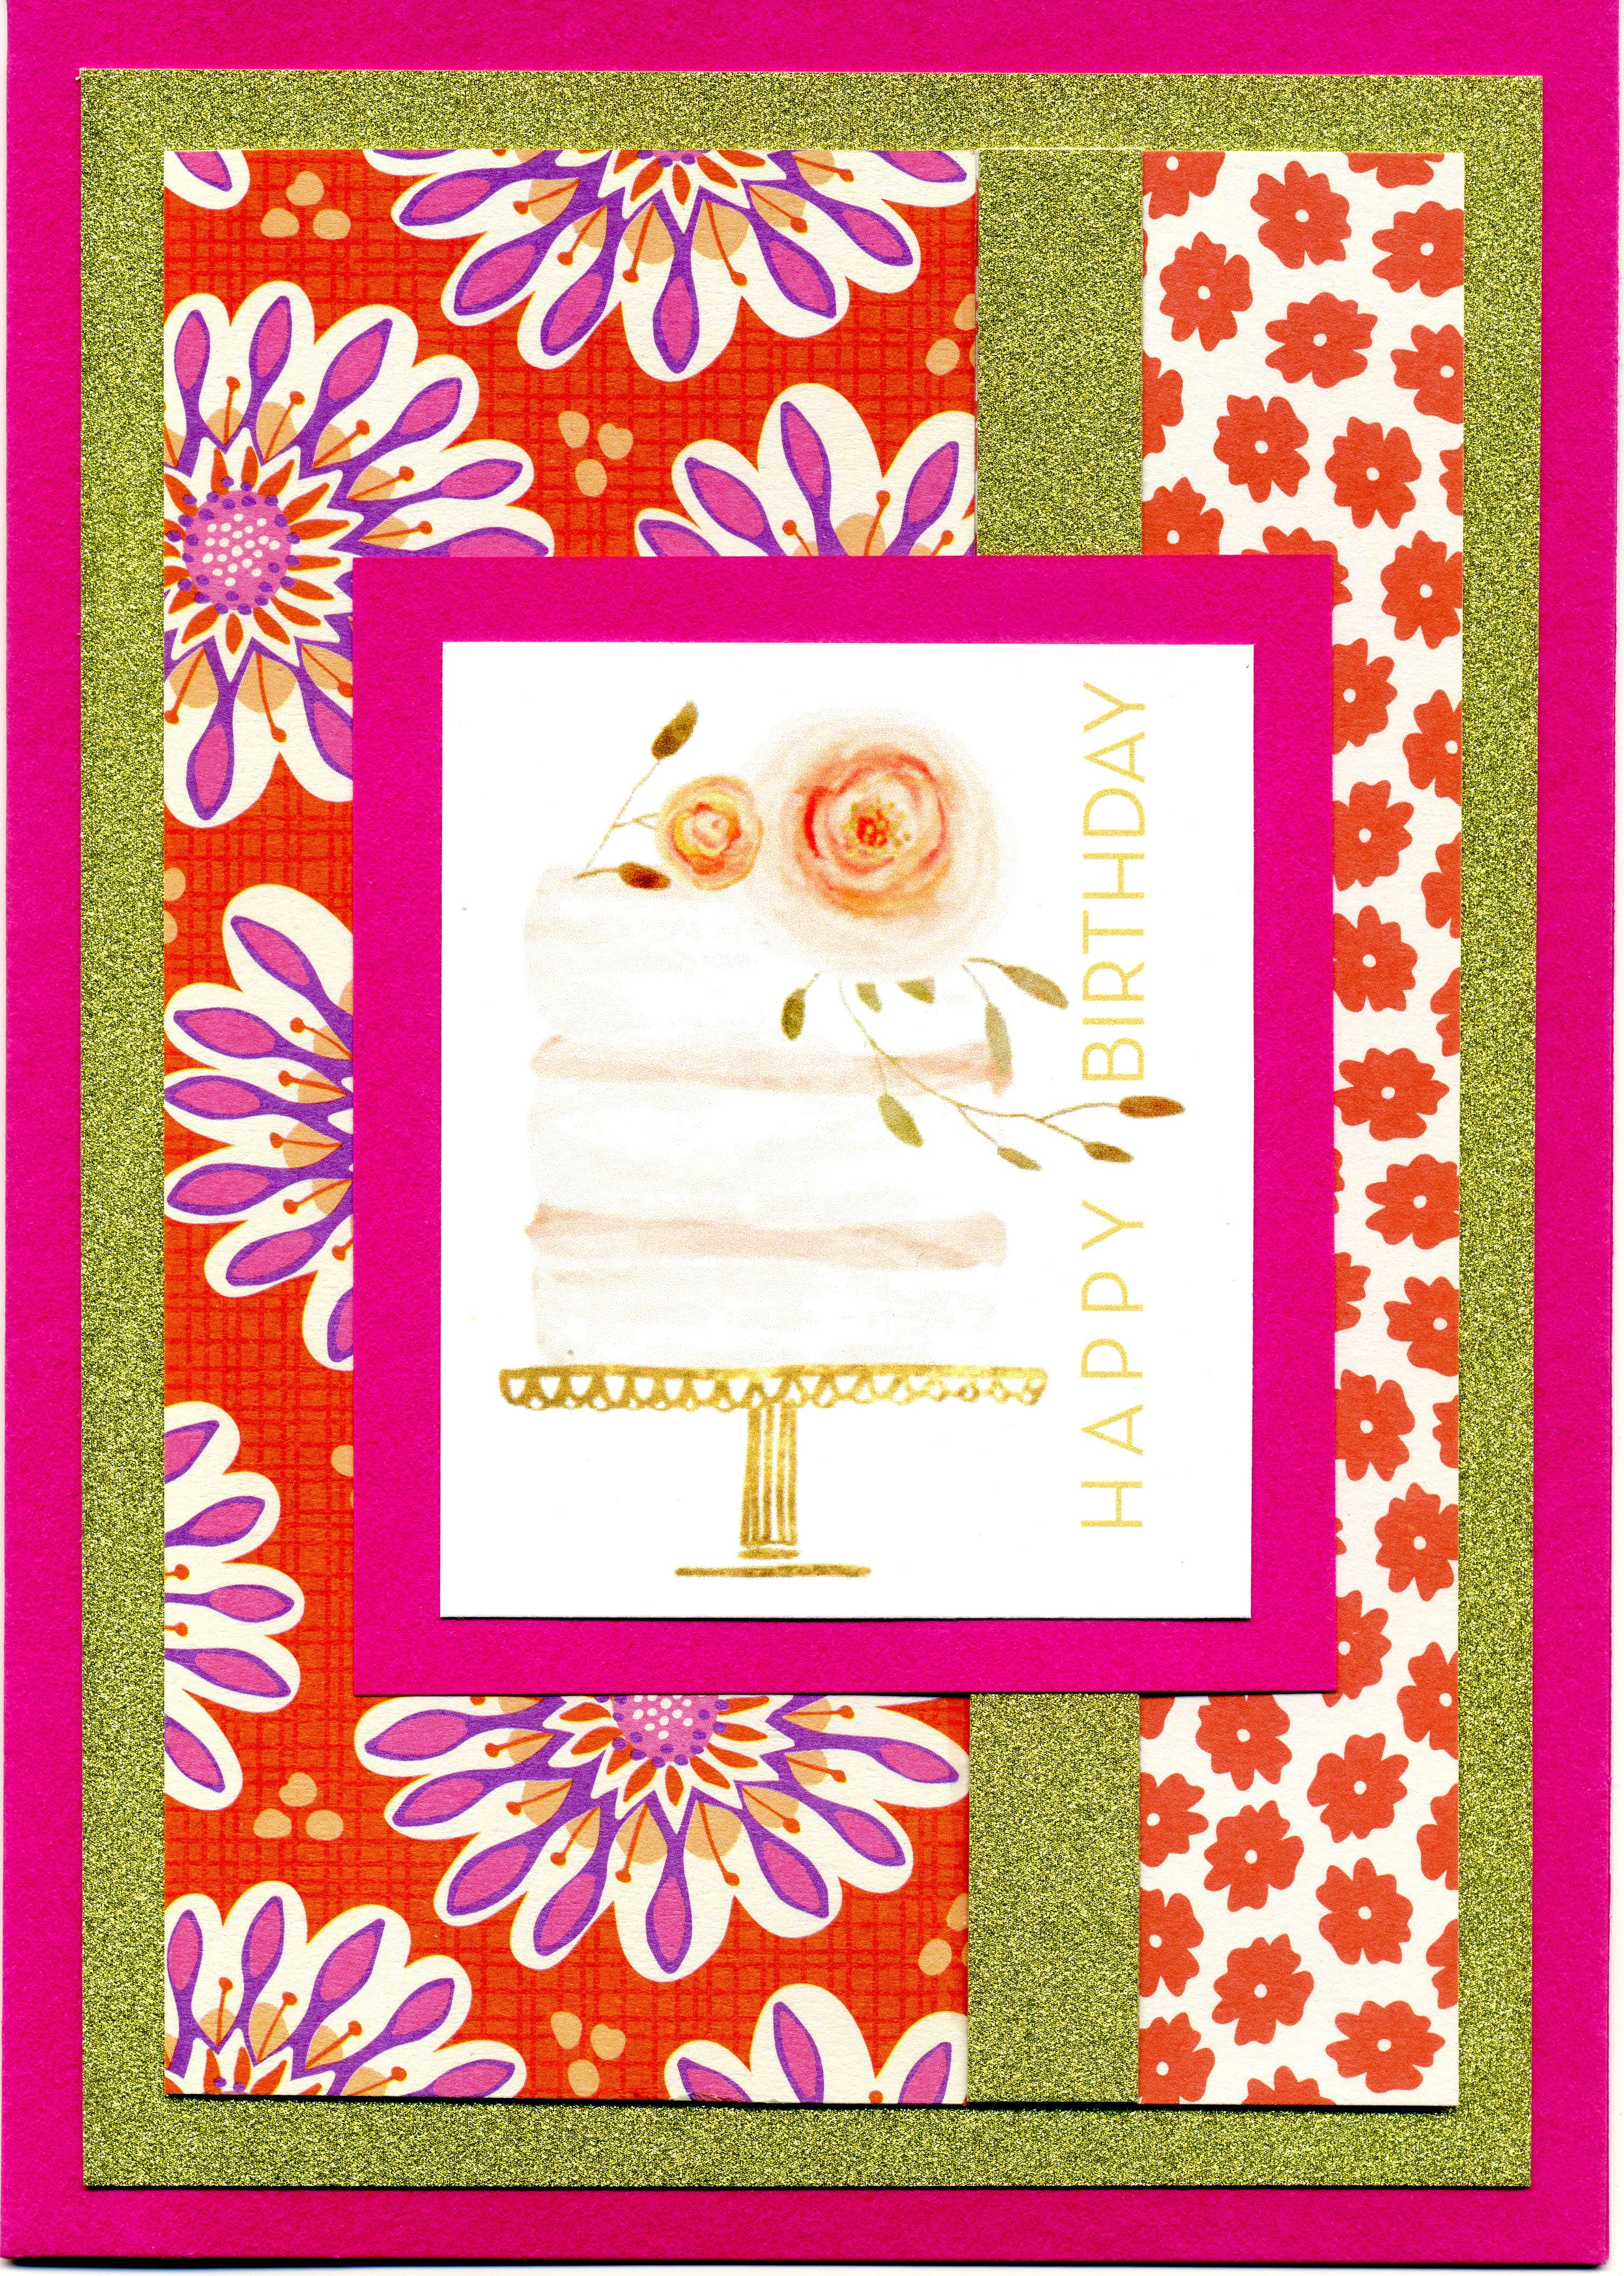 Pin By Seltzer Giftshop On Handmade Greeting Cards Pinterest